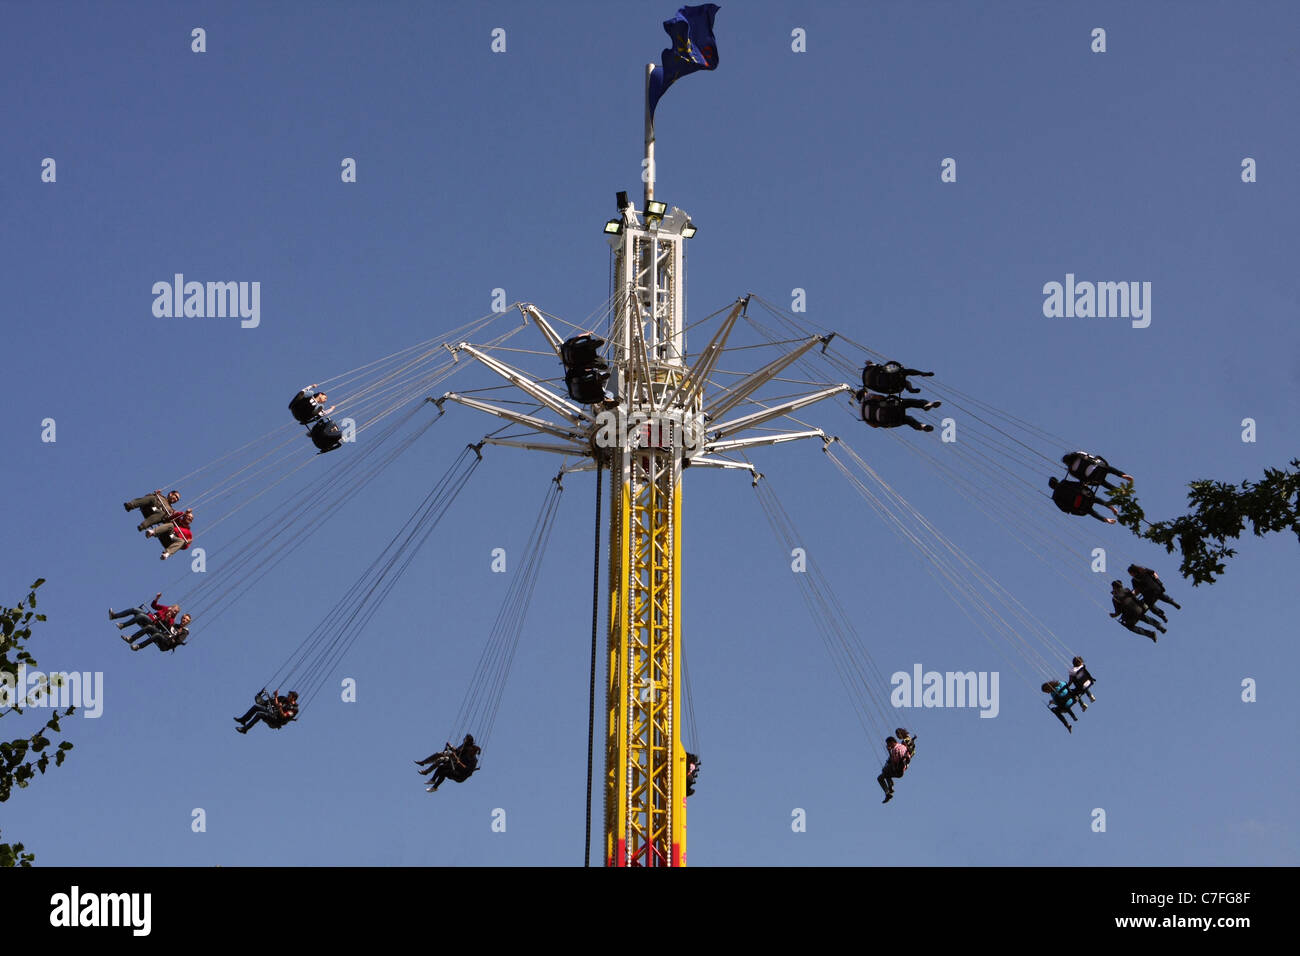 people whirling around on a funfair ride called the star flyer on the embankment of the River Thames - Stock Image